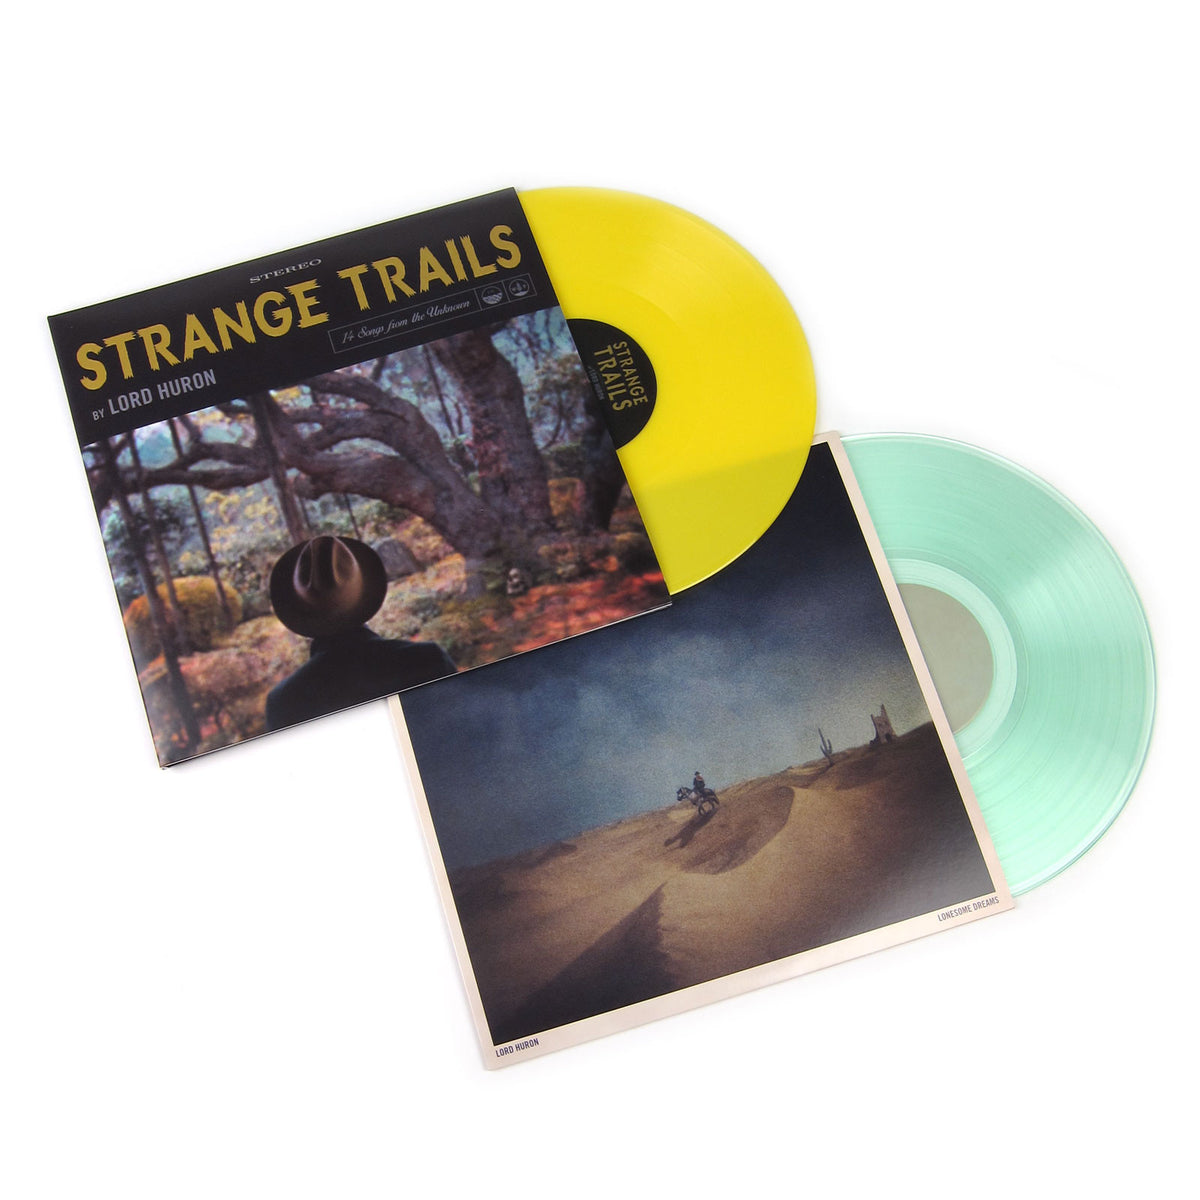 Lord Huron: Colored Vinyl LP Album Pack (Lonesome Dreams, Strange Trails)